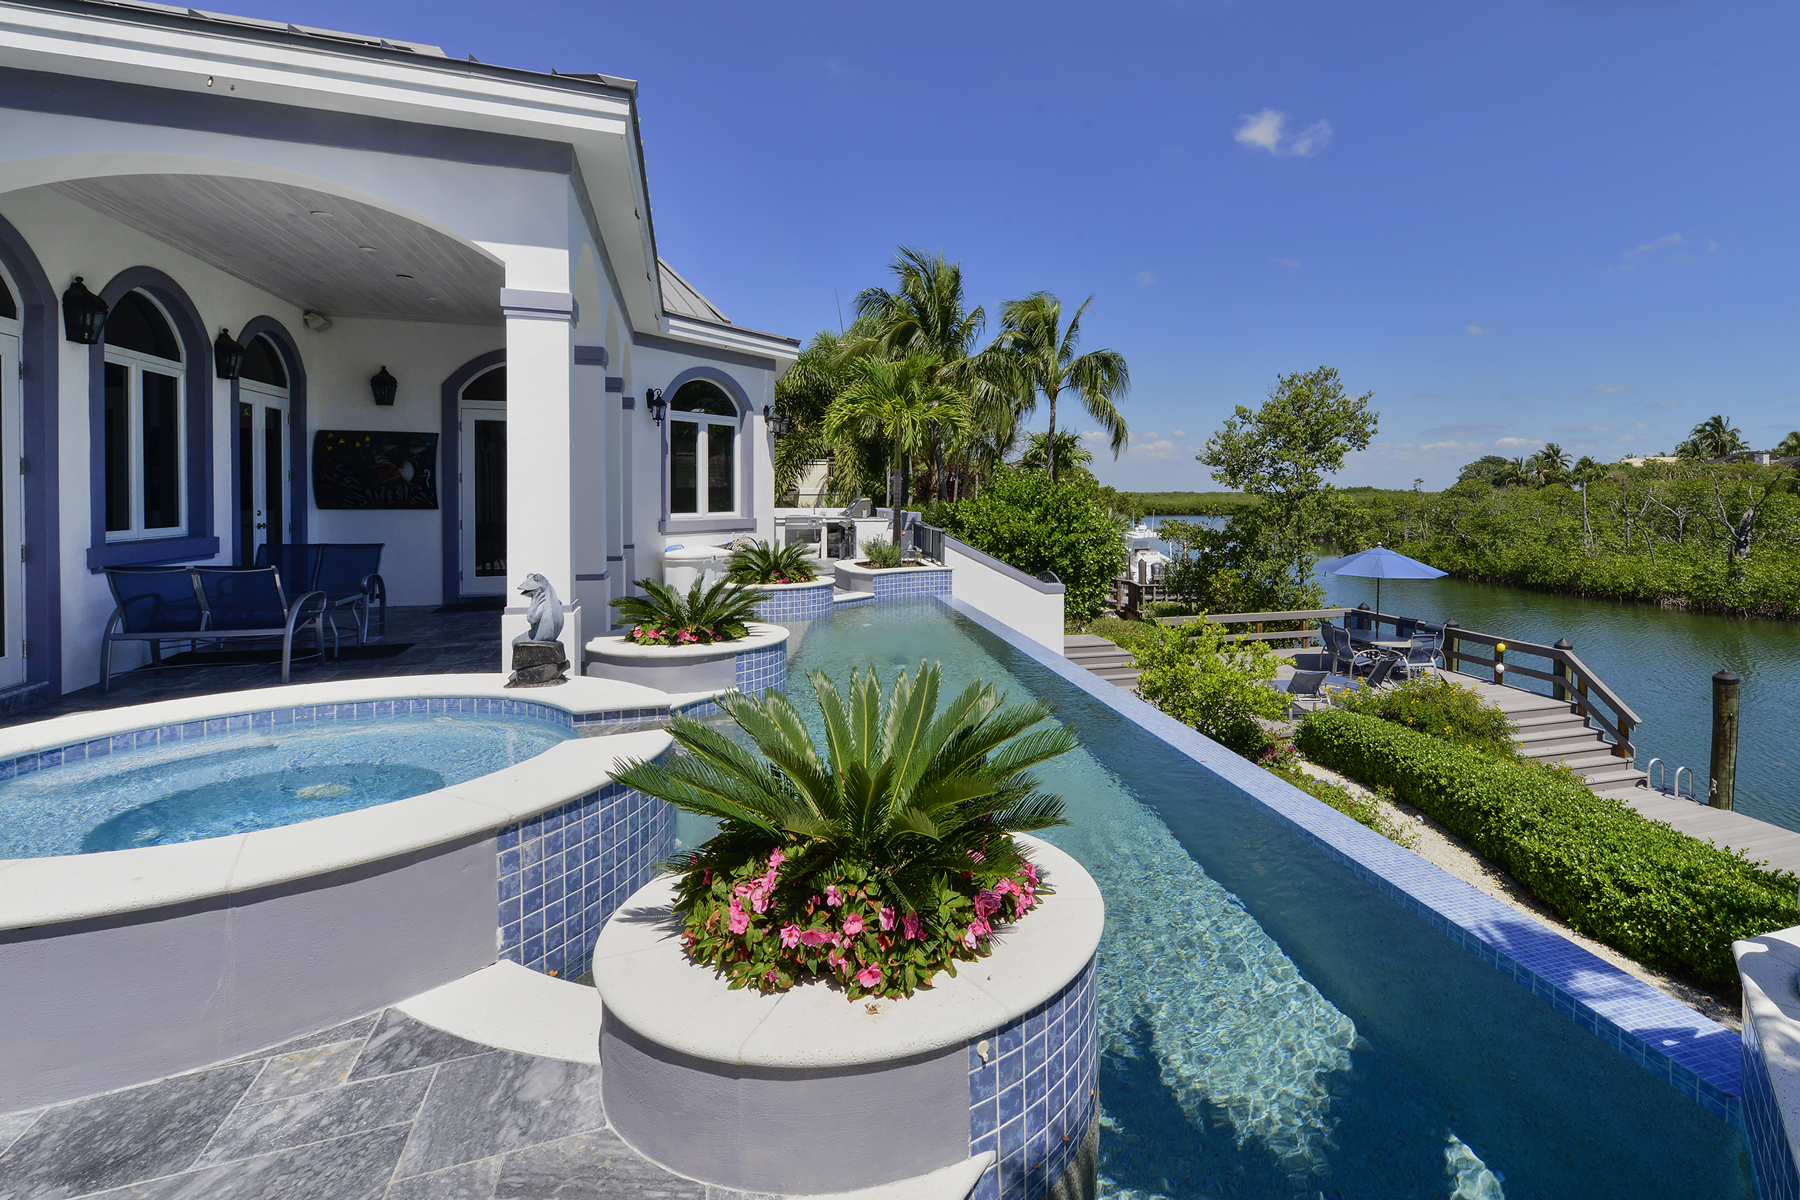 Single Family Home for Sale at Custom Built Waterfront Home at Ocean Reef 17 North Pelican Drive Key Largo, Florida 33037 United States